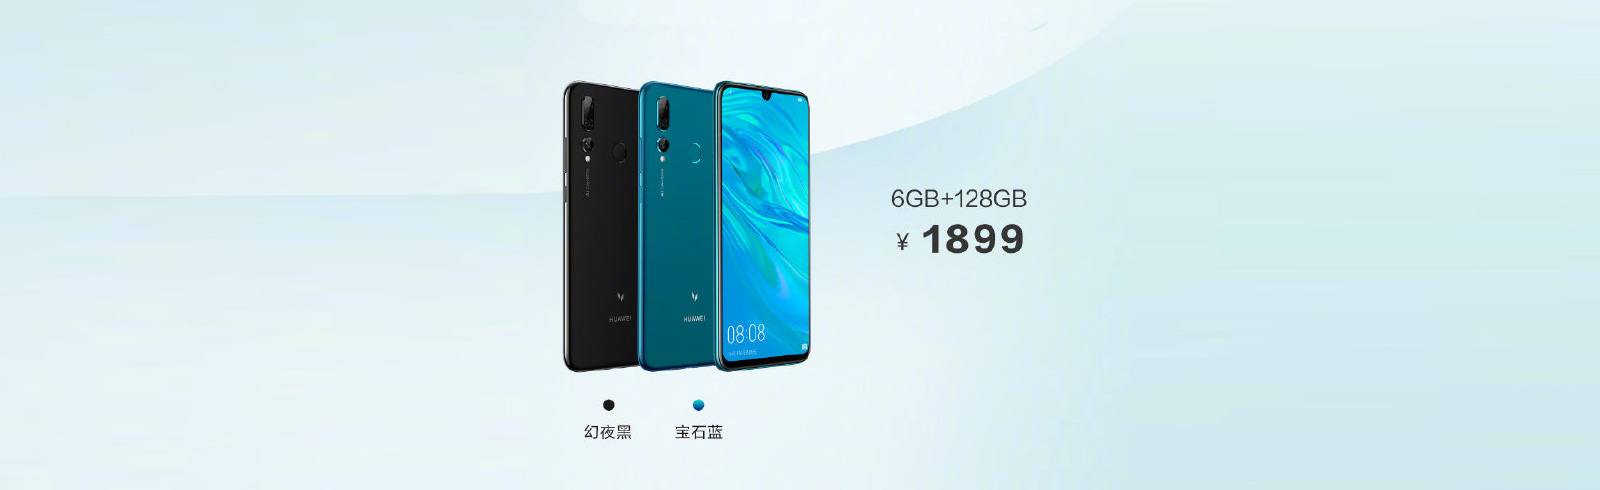 Huawei Maimang 8 (Huawei Mate 30 Lite) is announced with a Kirin 710 chipset and EMUI 9.0